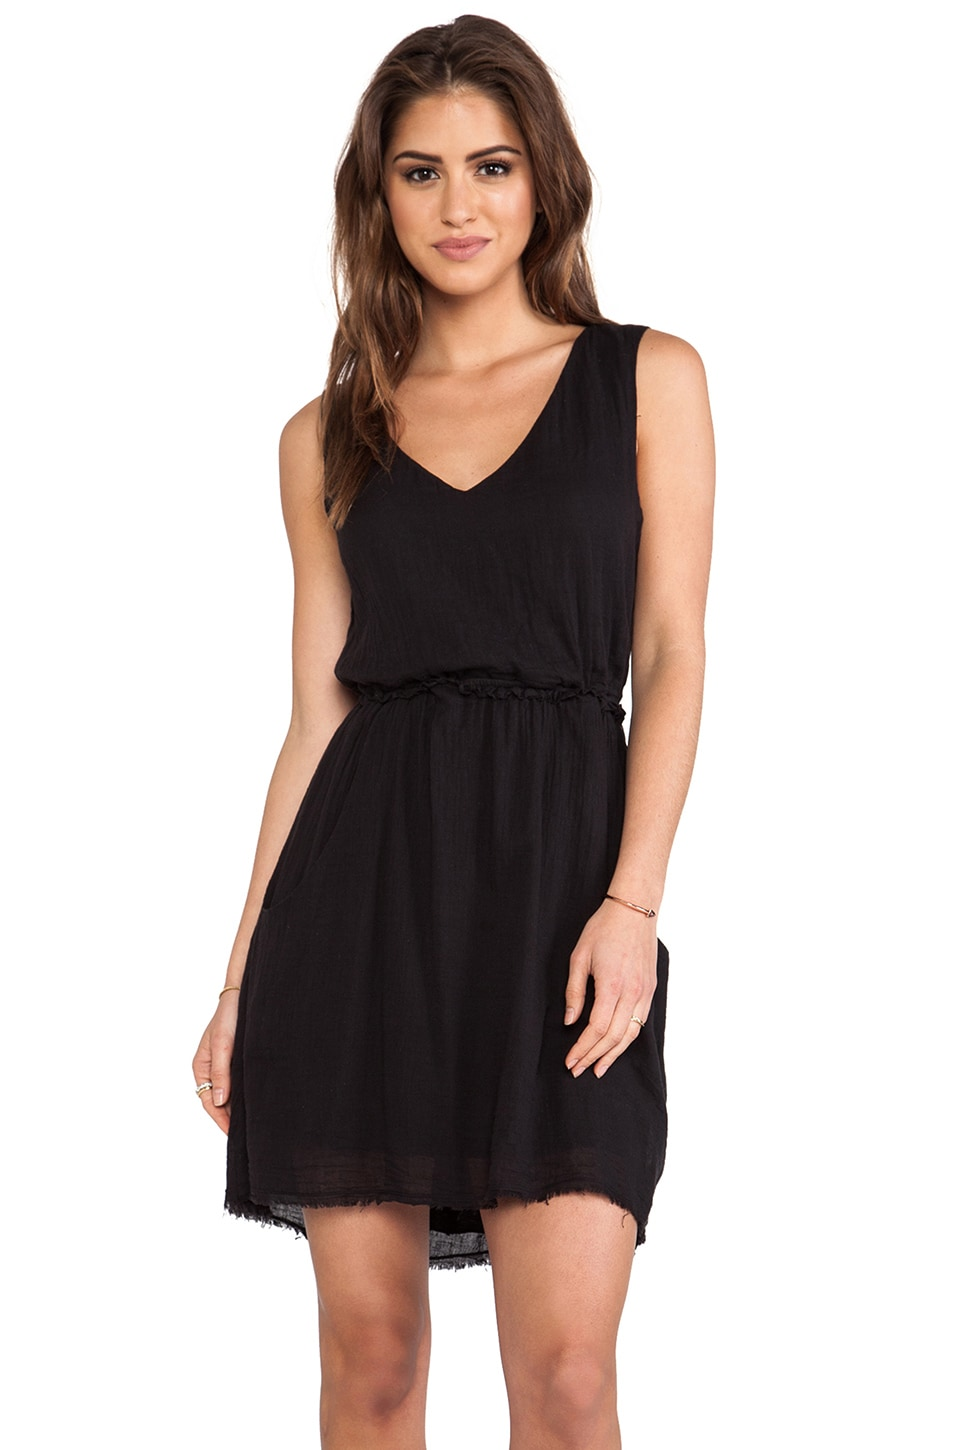 Velvet by Graham & Spencer Teagan Sheer Jersey Dress in Black